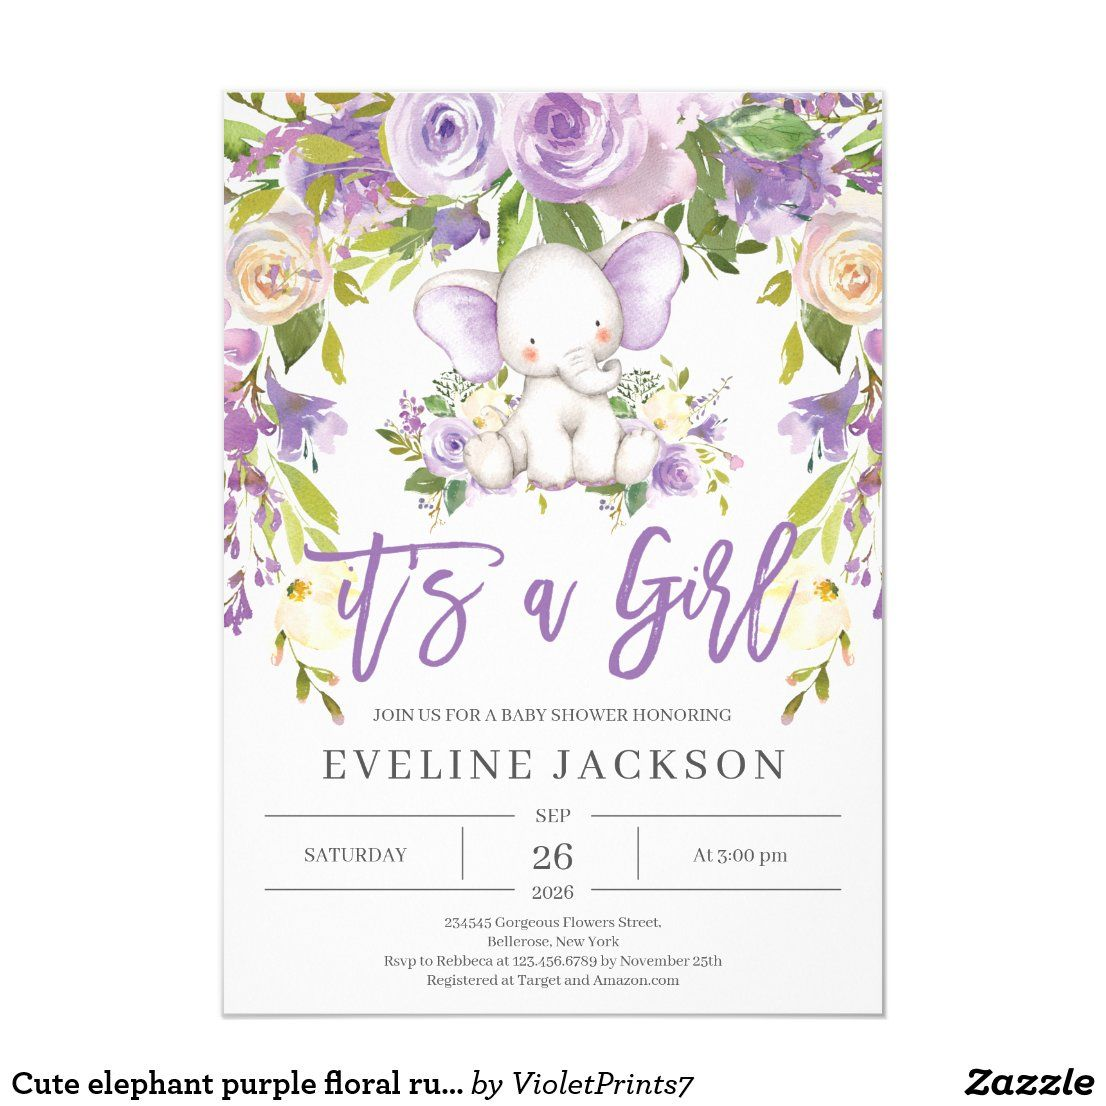 Pin on Baby Shower Invitations,Birth Announcements and